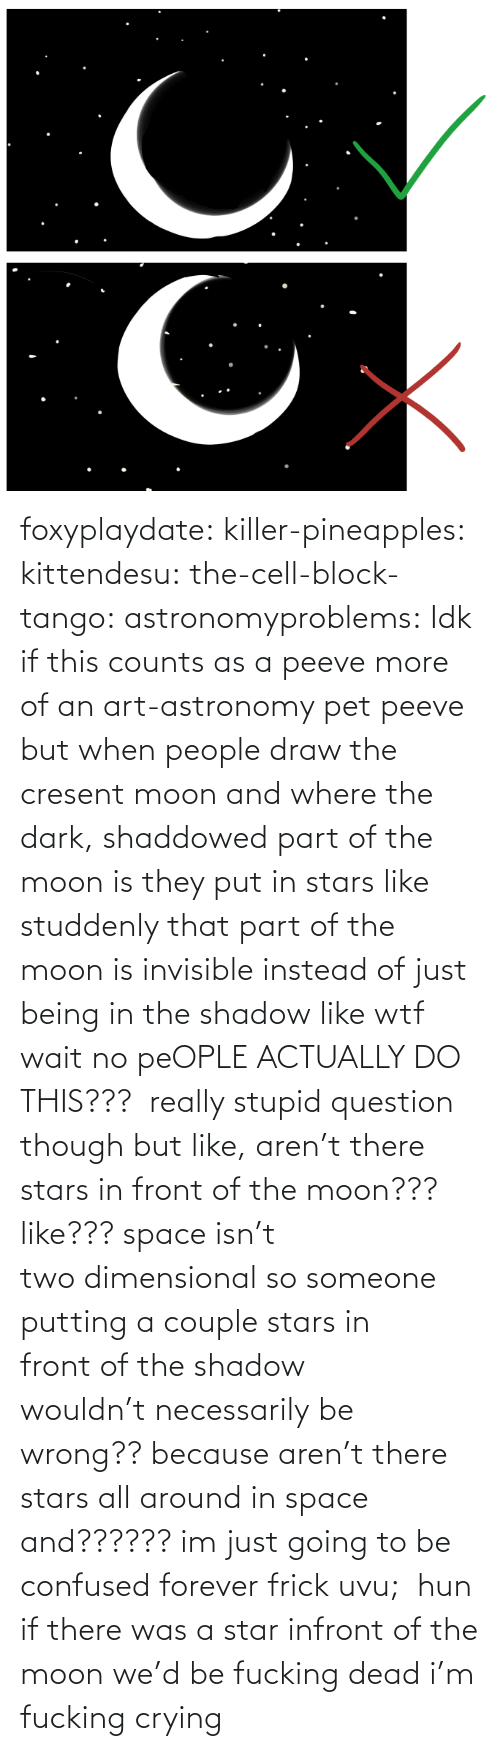 block: foxyplaydate:  killer-pineapples:  kittendesu:  the-cell-block-tango:  astronomyproblems:  Idk if this counts as a peeve more of an art-astronomy pet peeve but when people draw the cresent moon and where the dark, shaddowed part of the moon is they put in stars like studdenly that part of the moon is invisible instead of just being in the shadow like wtf  wait no peOPLE ACTUALLY DO THIS???   really stupid question though but like, aren't there stars in front of the moon??? like??? space isn't two dimensional so someone putting a couple stars in front of the shadow wouldn't necessarily be wrong?? because aren't there stars all around in space and?????? im just going to be confused forever frick uvu;   hun if there was a star infront of the moon we'd be fucking dead  i'm fucking crying